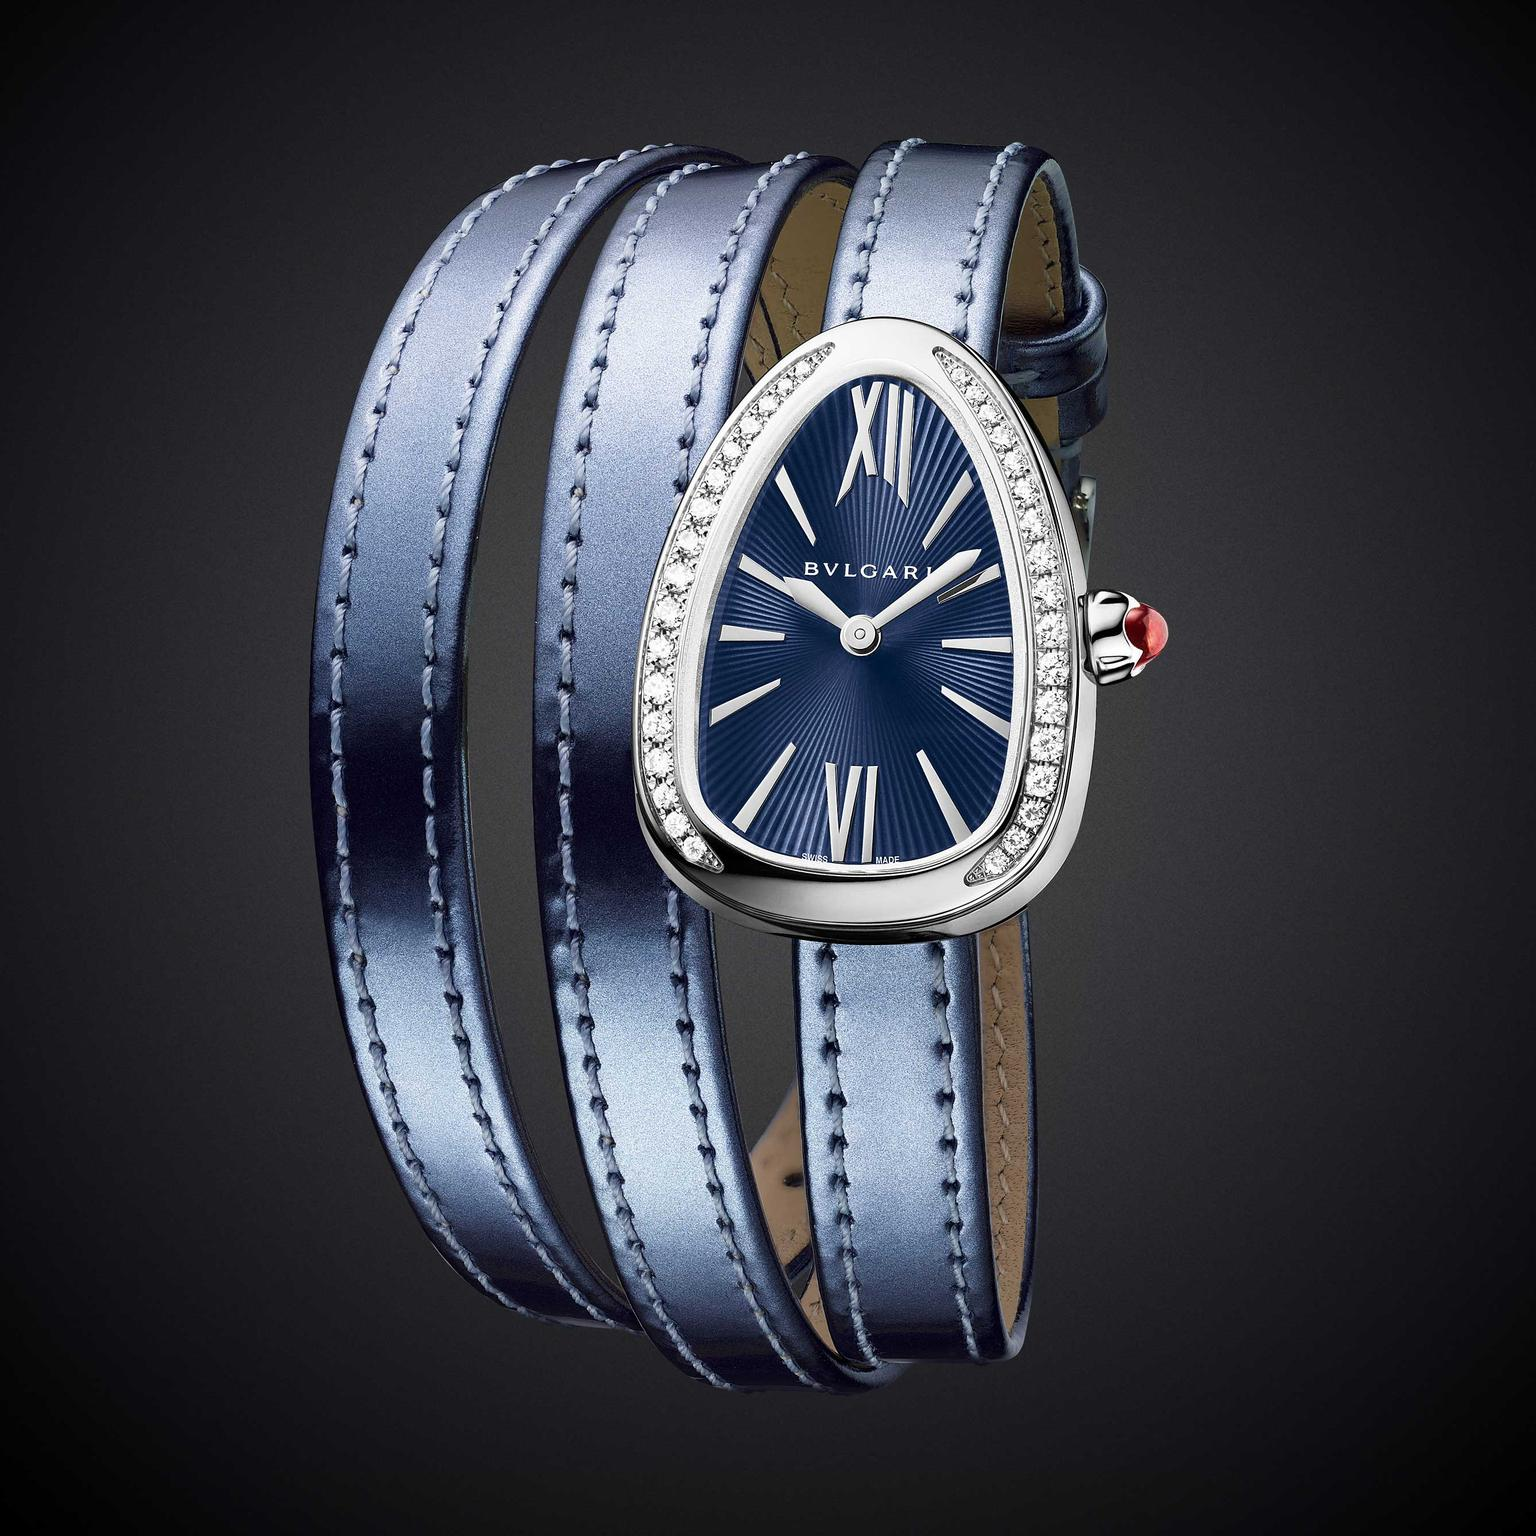 Bulgari Serpenti Twist Your Time on blue metallic leather strap